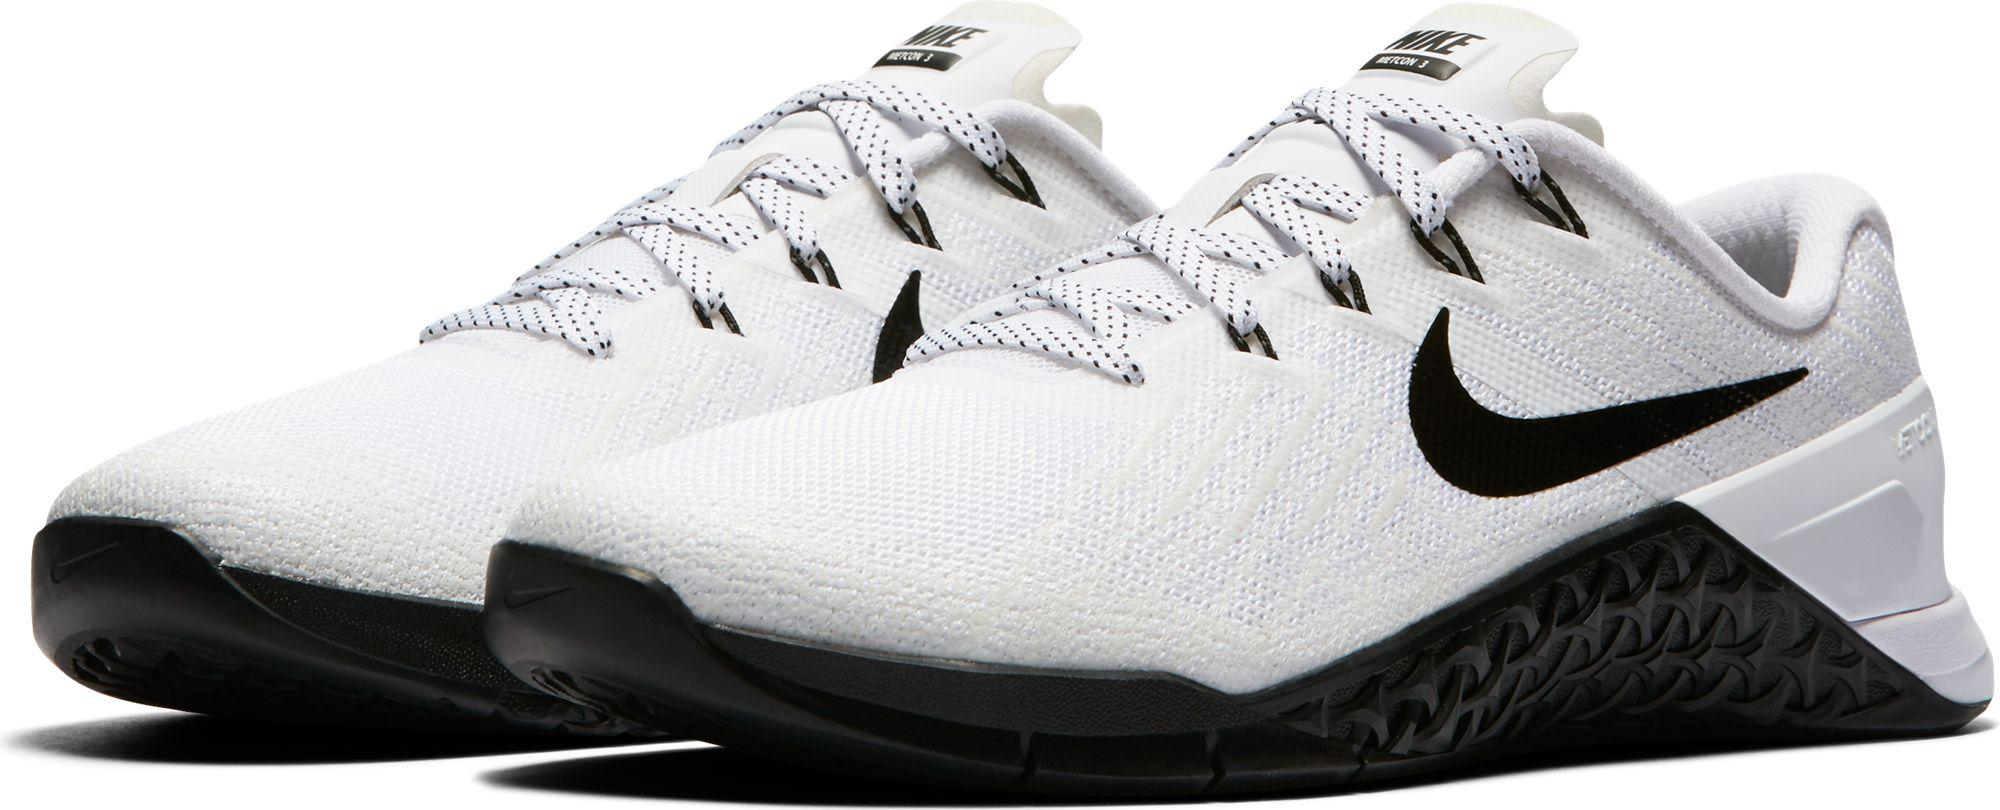 ba8cc4030b nike-WhiteBlack-Metcon-3-Training-Shoes.jpeg